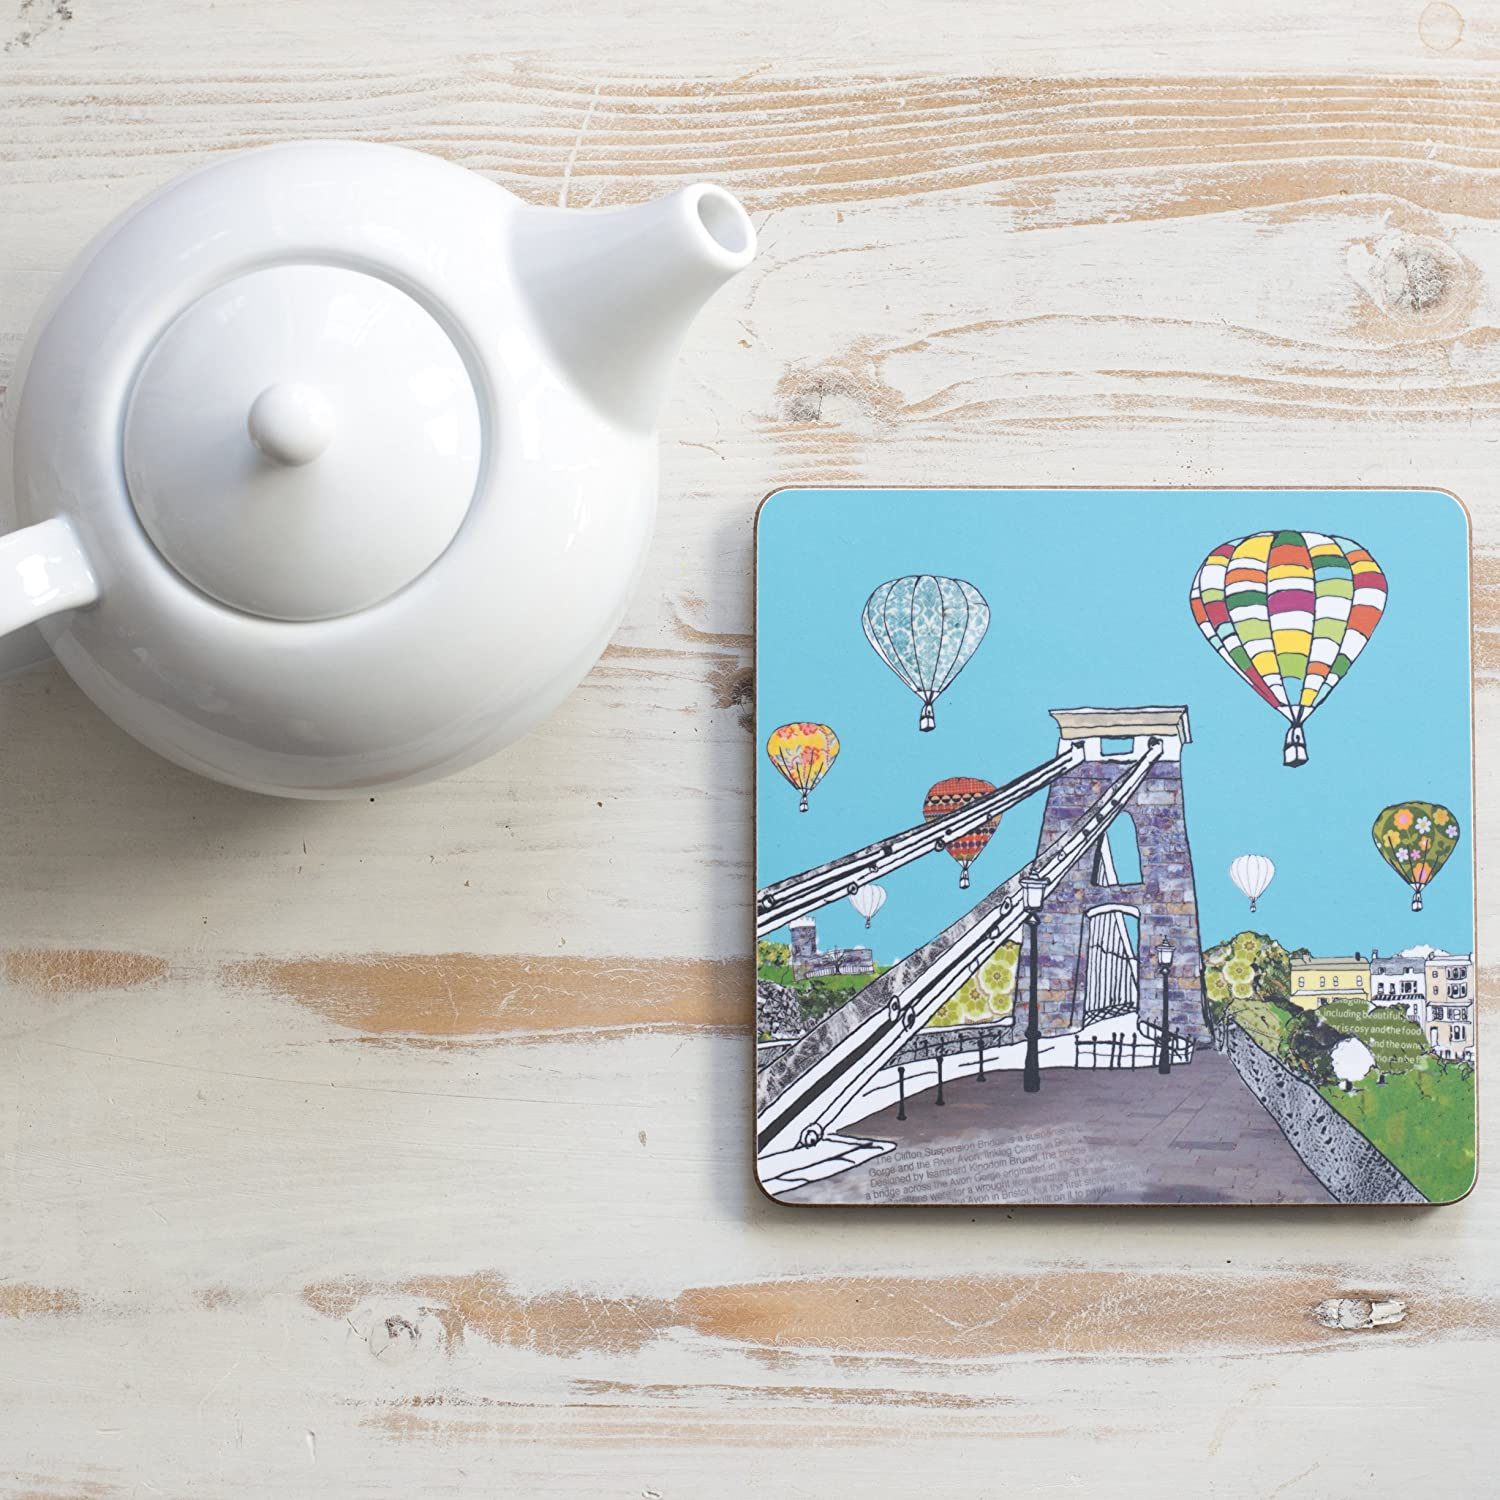 Balloons Over The Toll Bridge Square Teapot Stand Emmeline Simpson